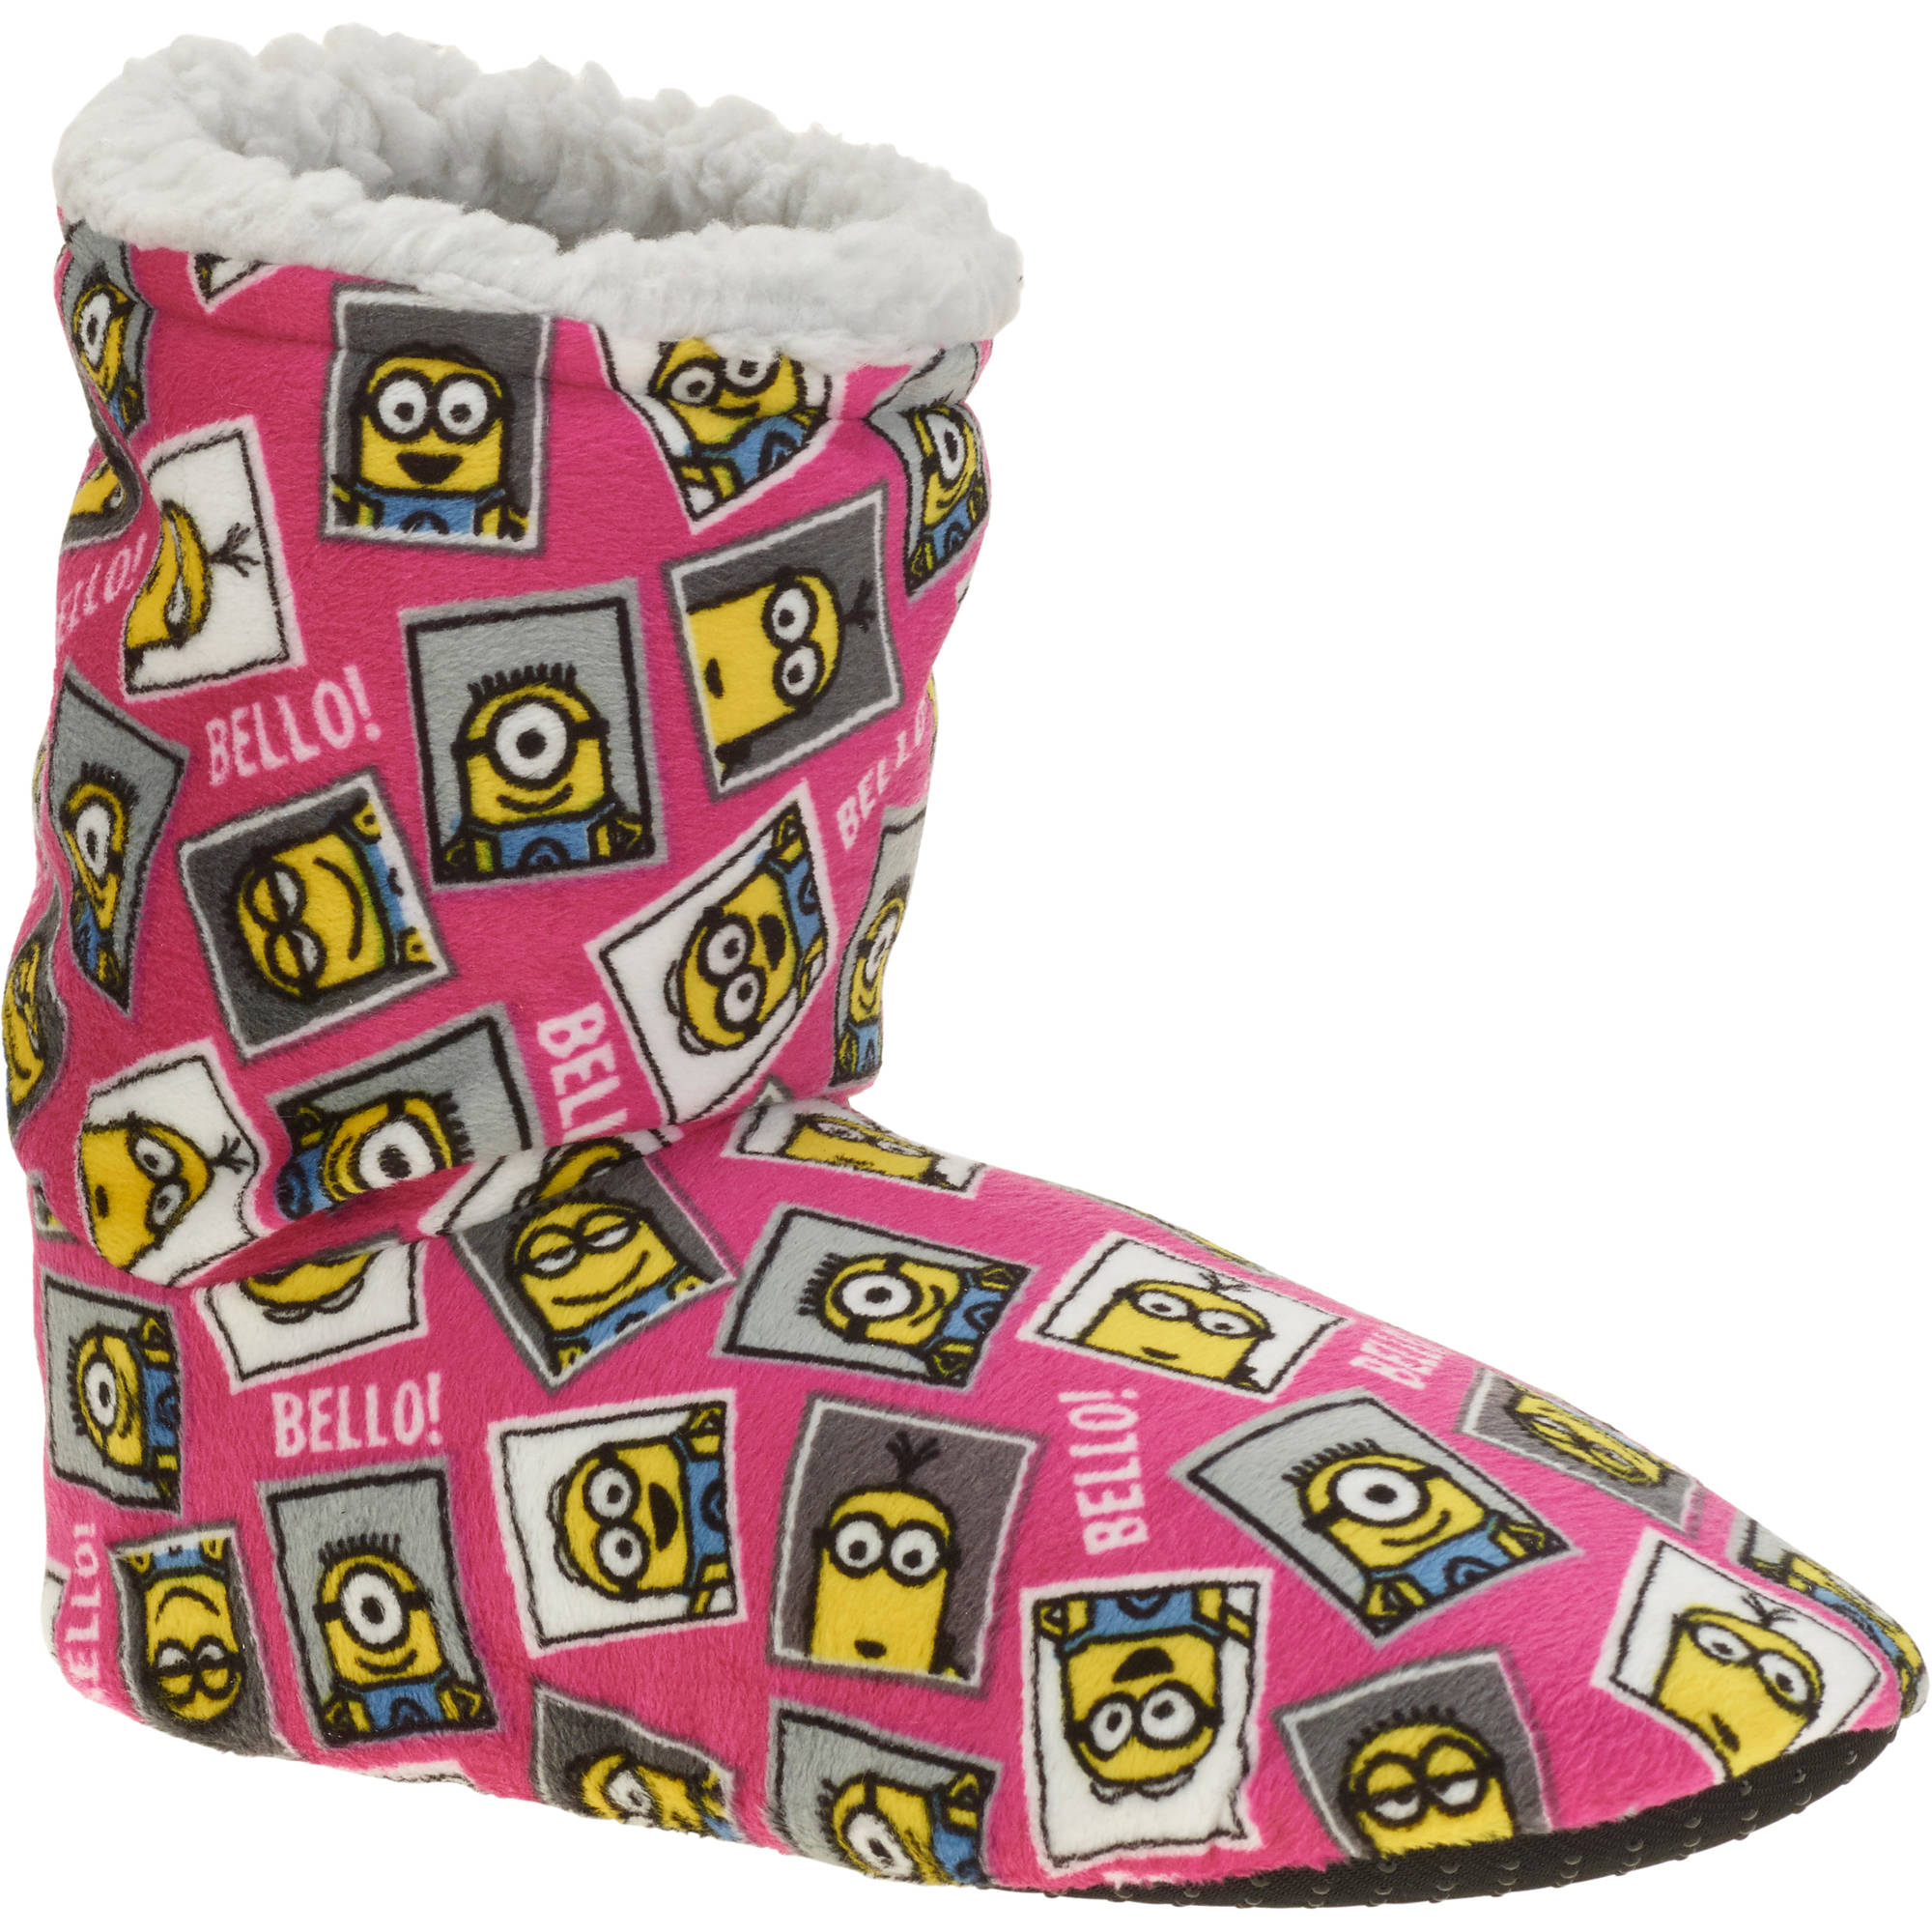 Silky Suede Fuzzy Babba Despicable Me Minions Printed Bootie Slipper Socks